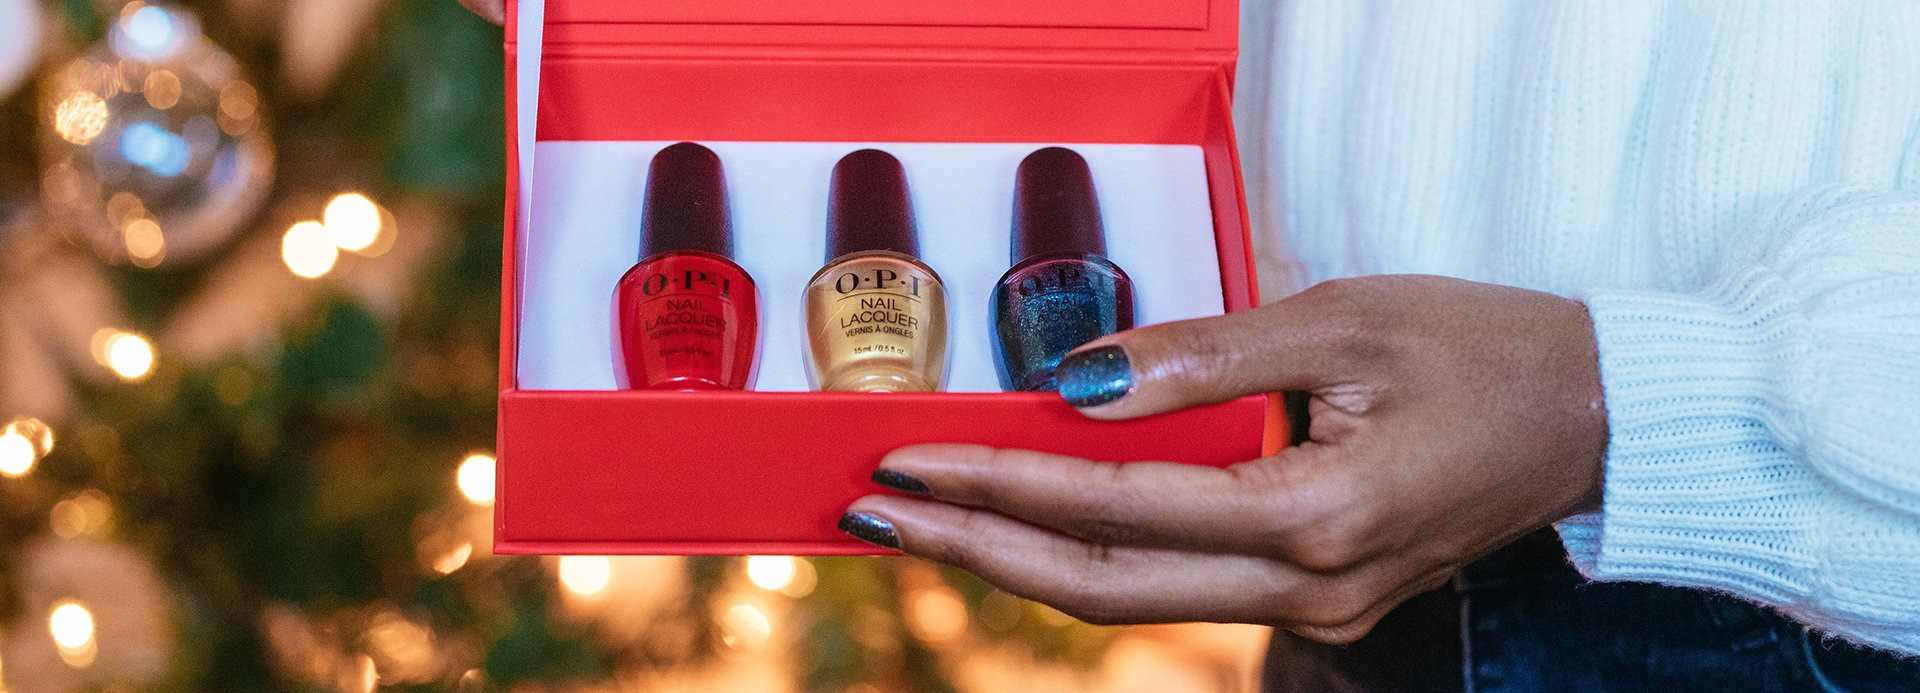 Find the perfect gift with customized gift sets from OPI